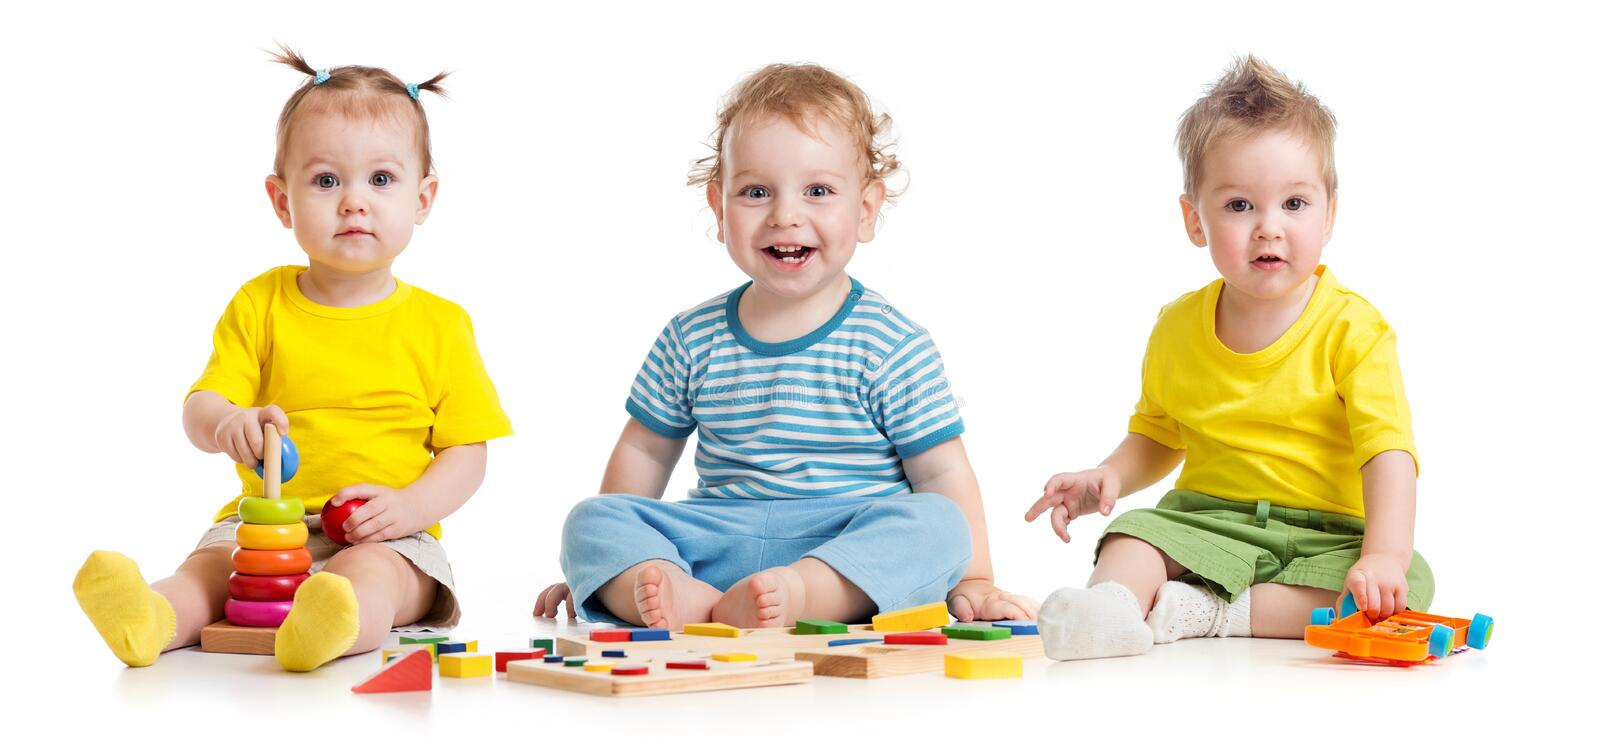 Funny kids group playing colorful toys isolated on white royalty free stock images